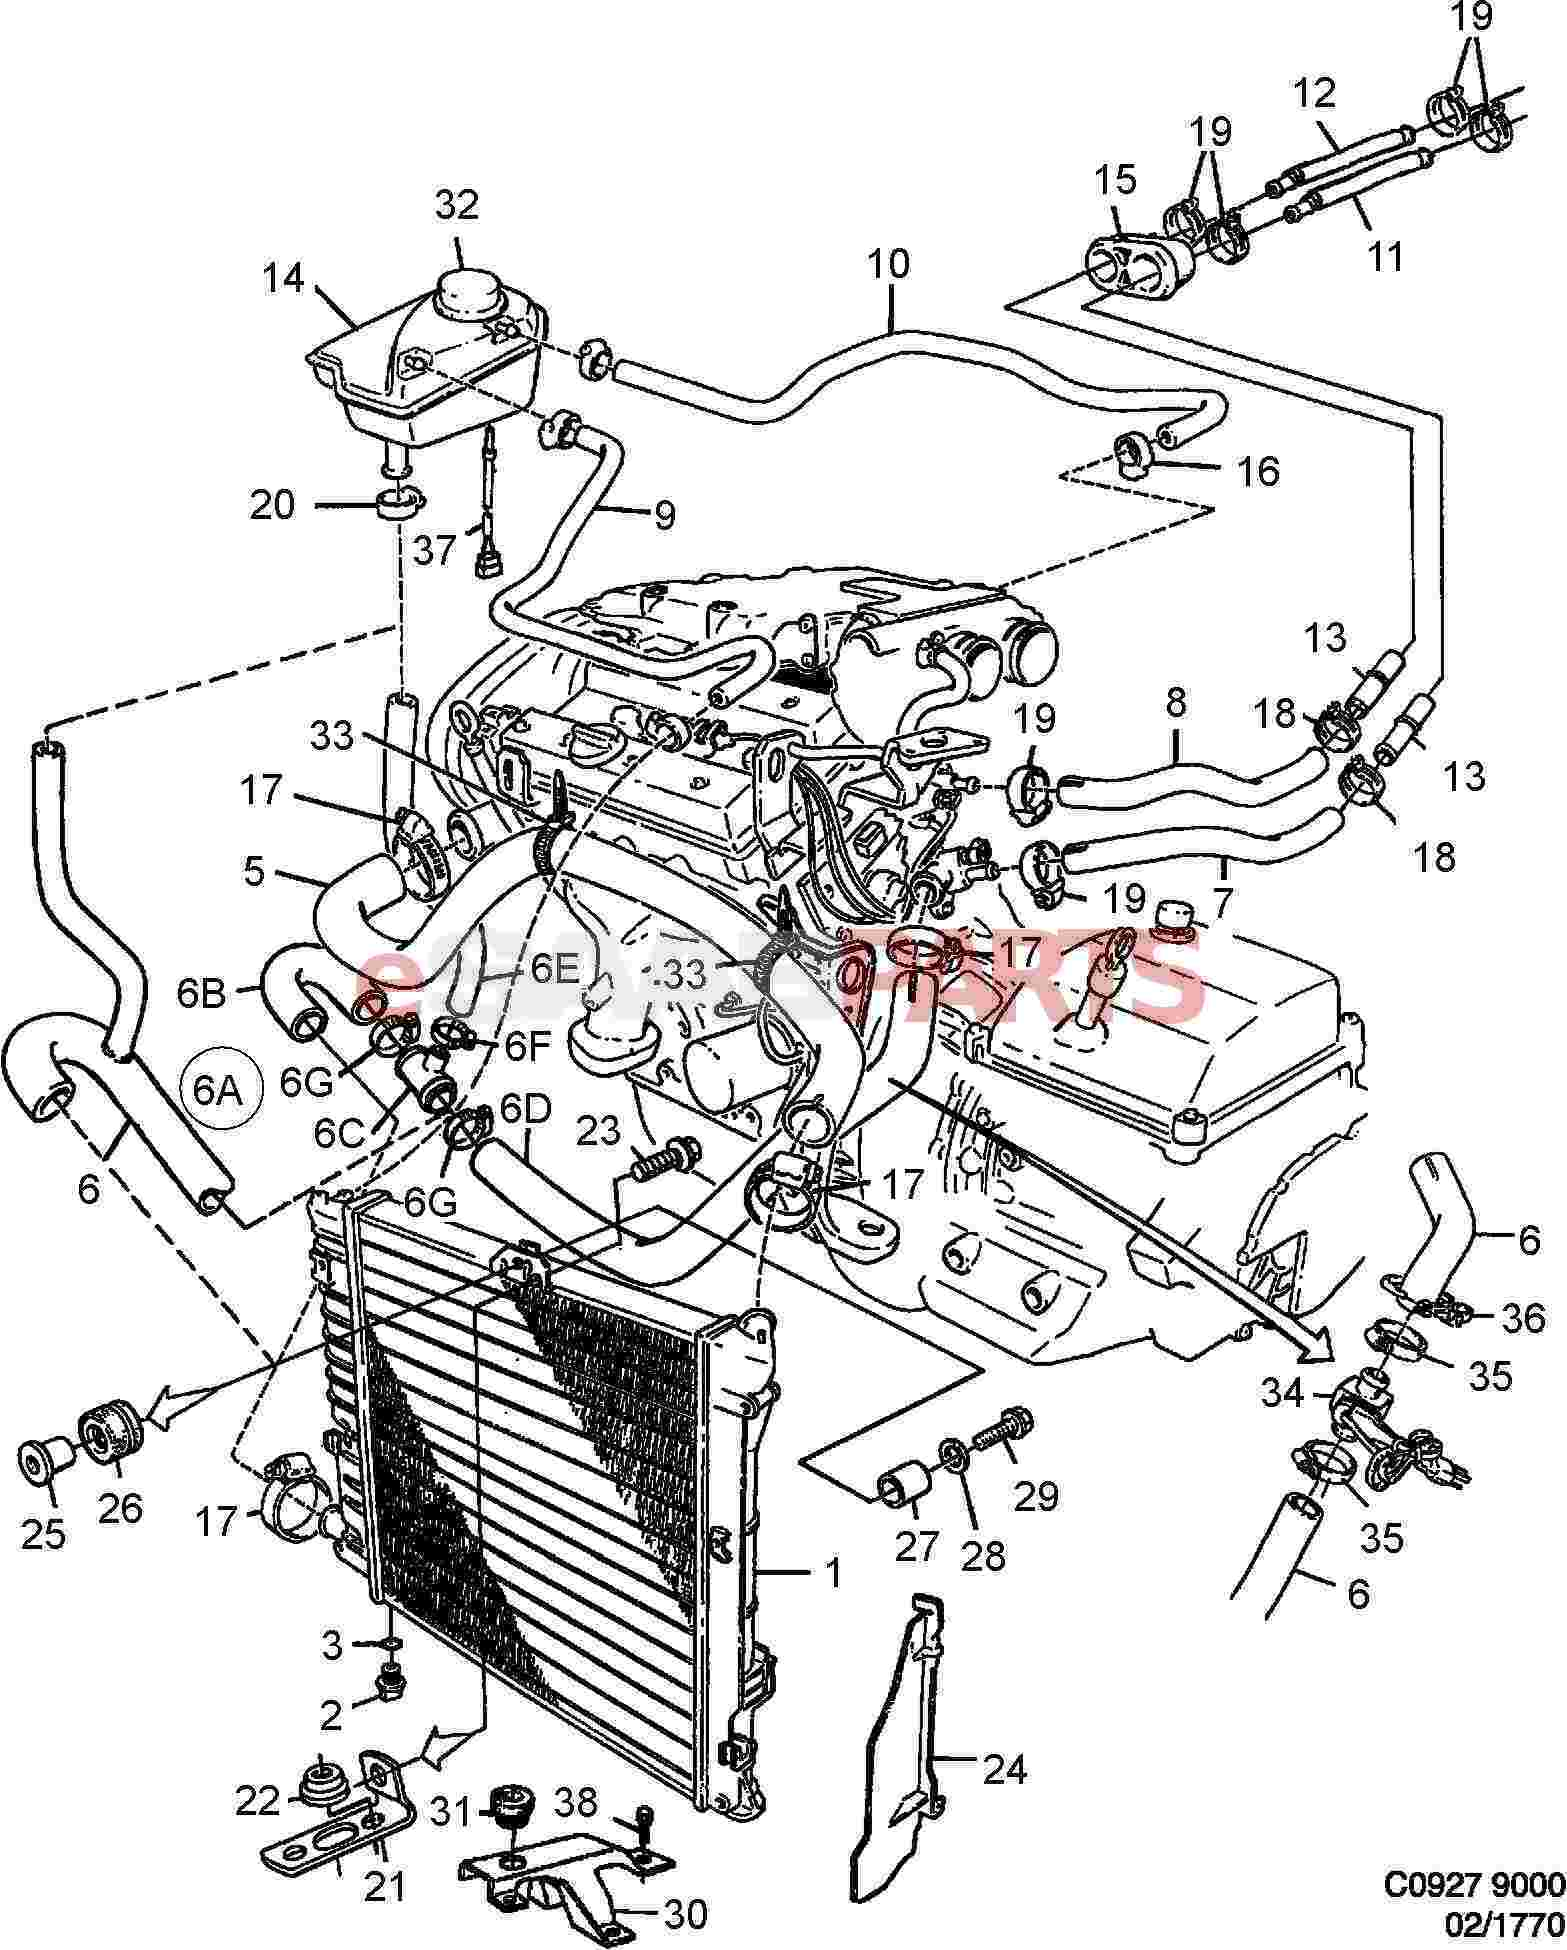 2004 saab 2 0 engine diagram  u2022 wiring diagram for free